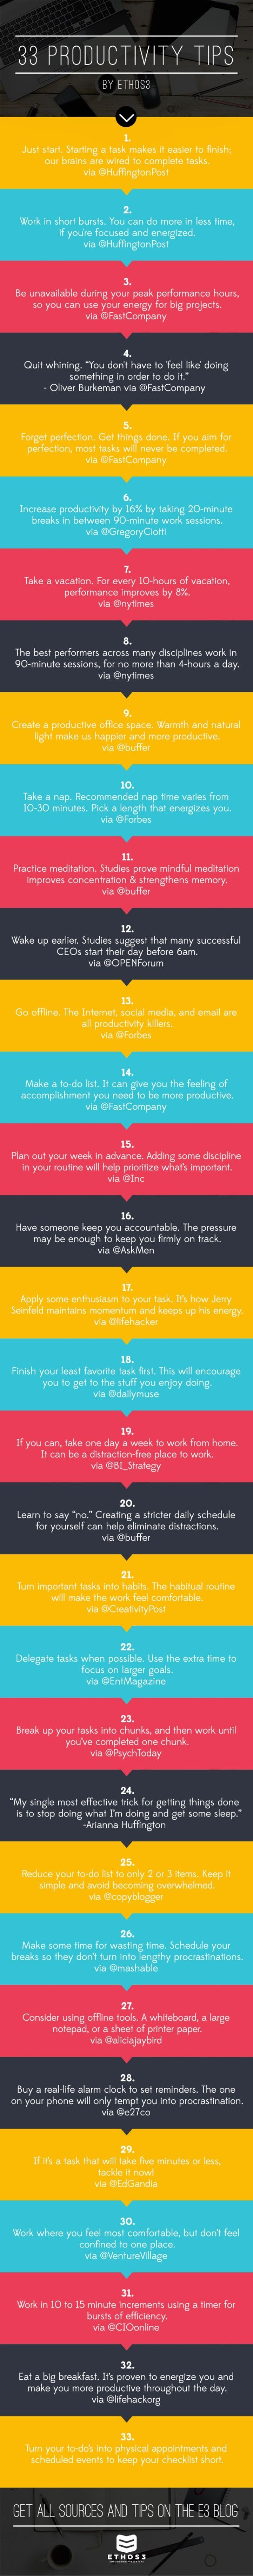 33 Productivity Tips, in 140 Characters or Less by Ethos3   Presentation Design and Training via slideshare